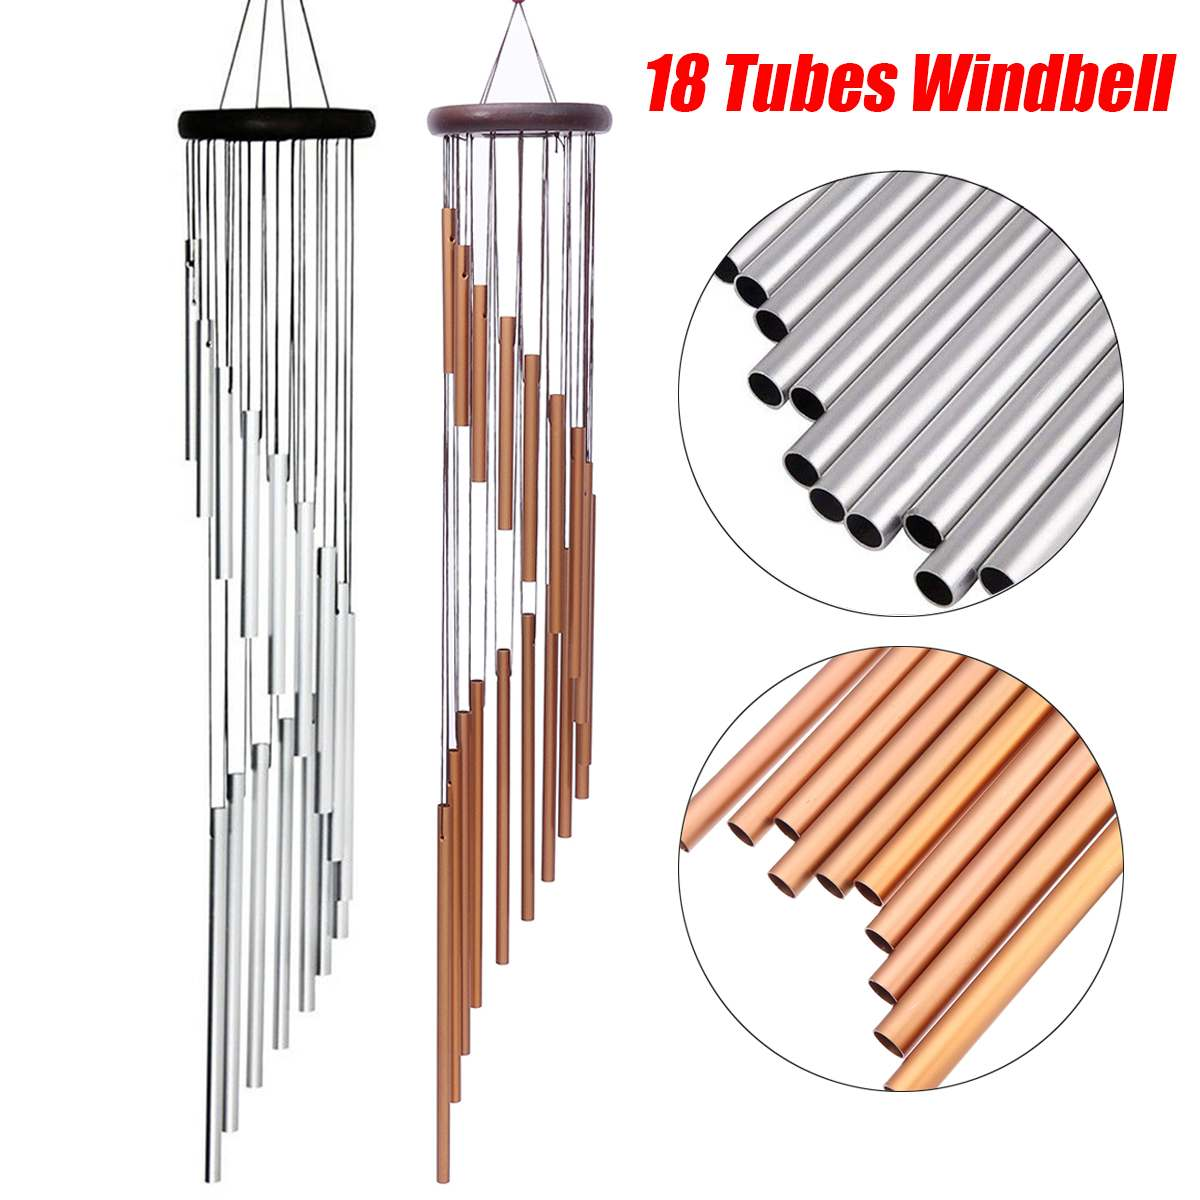 90cm Large Deep Relaxing 18 Tubes Wind Chimes Metal Wind Bells Handmade Ornament Garden Patio Outdoor Hanging Decor(China)